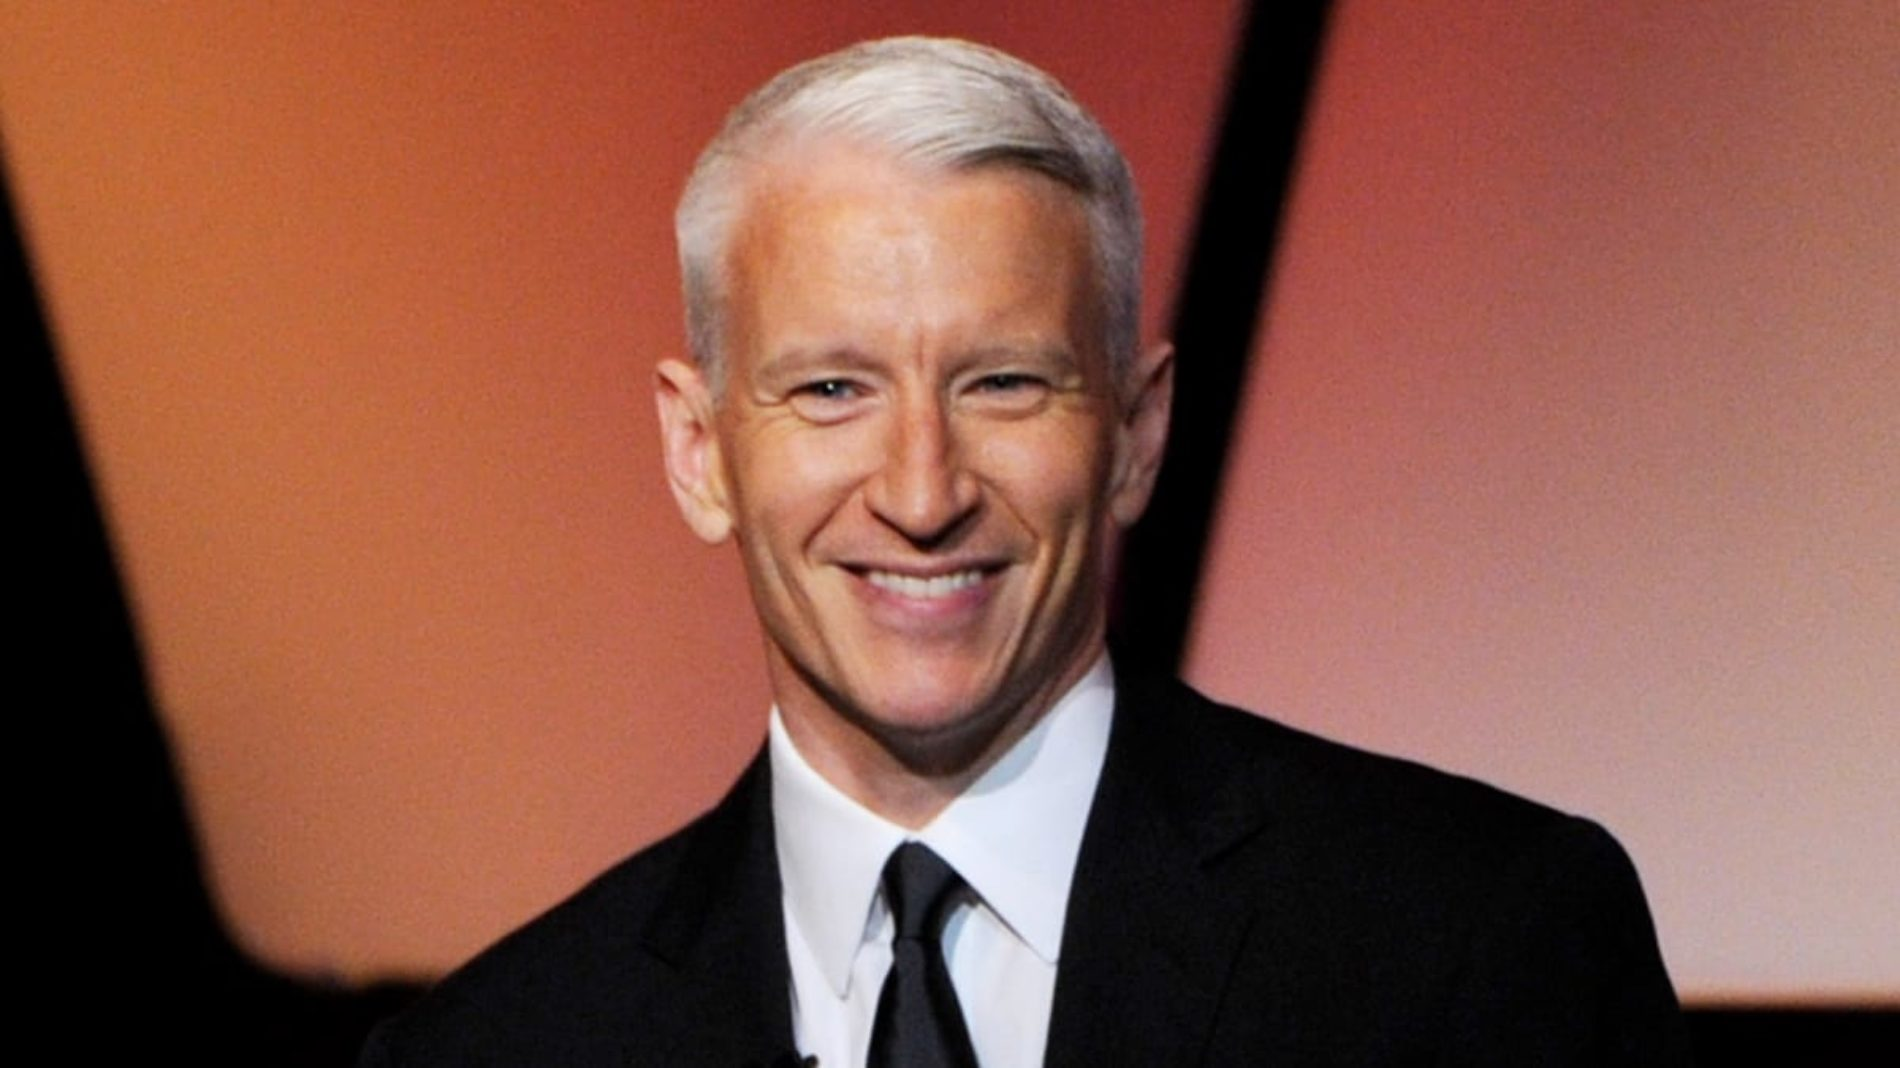 Anderson Cooper is newly single after splitting from longtime boyfriend